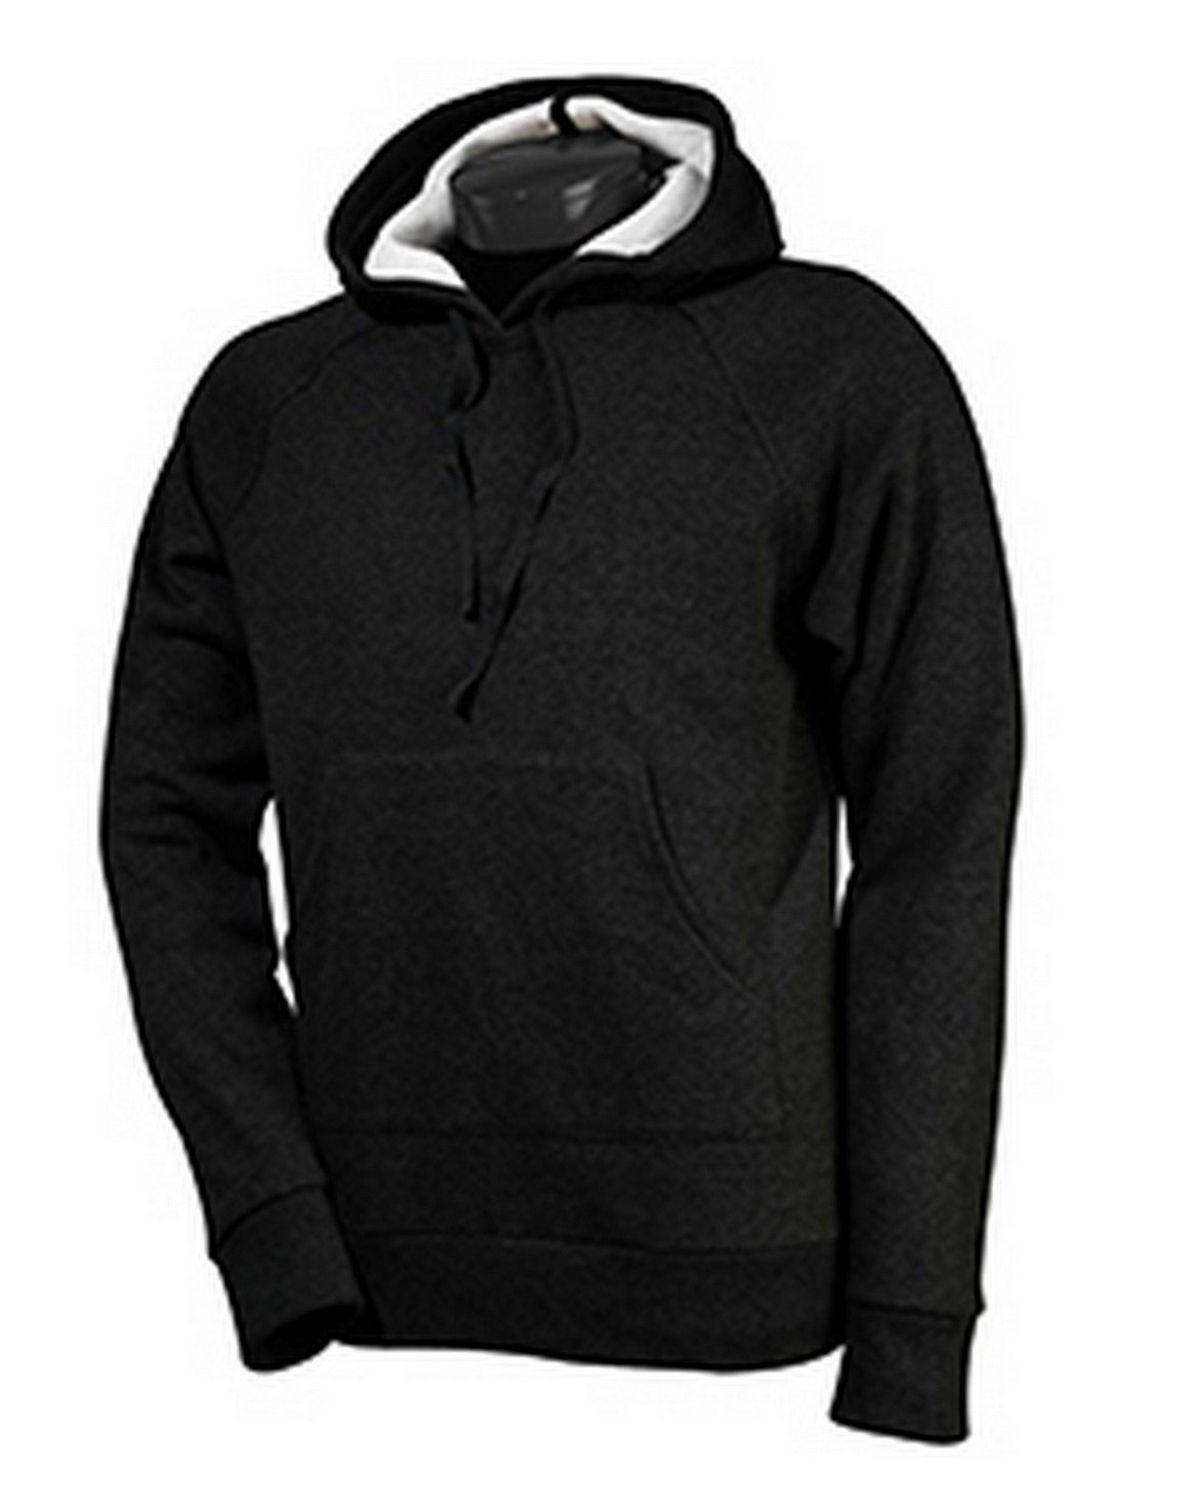 All Sport M4030 Performance Fleece Pullover Hoodie - Dark Grey Heather - XS M4030